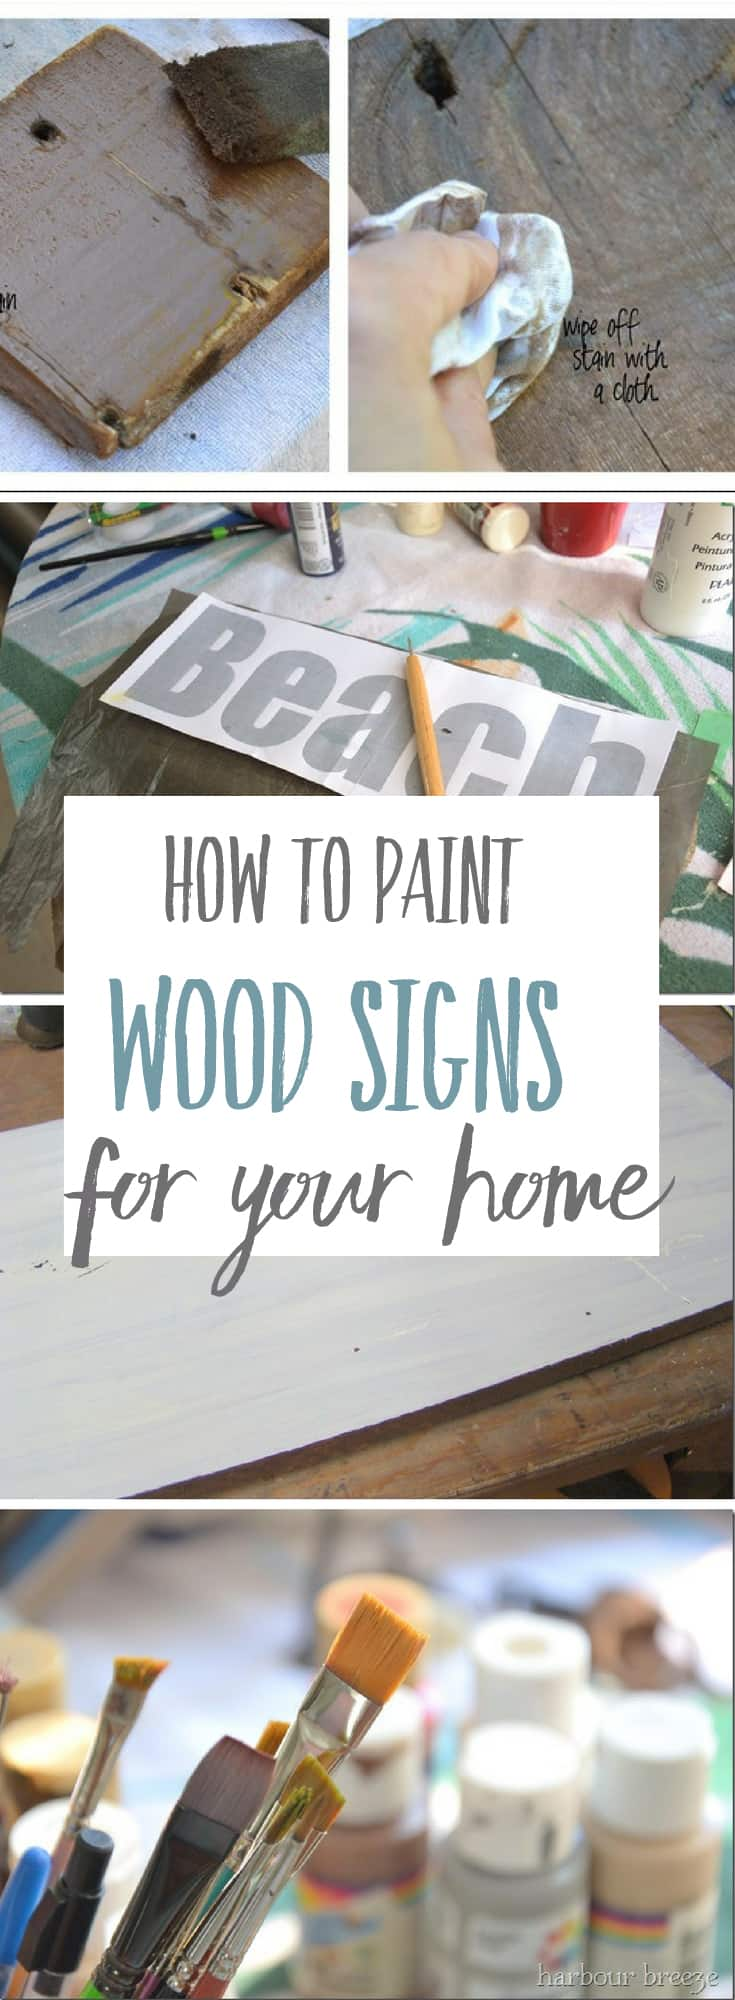 Decorative Painting On Wood Signs Harbour Breeze Home